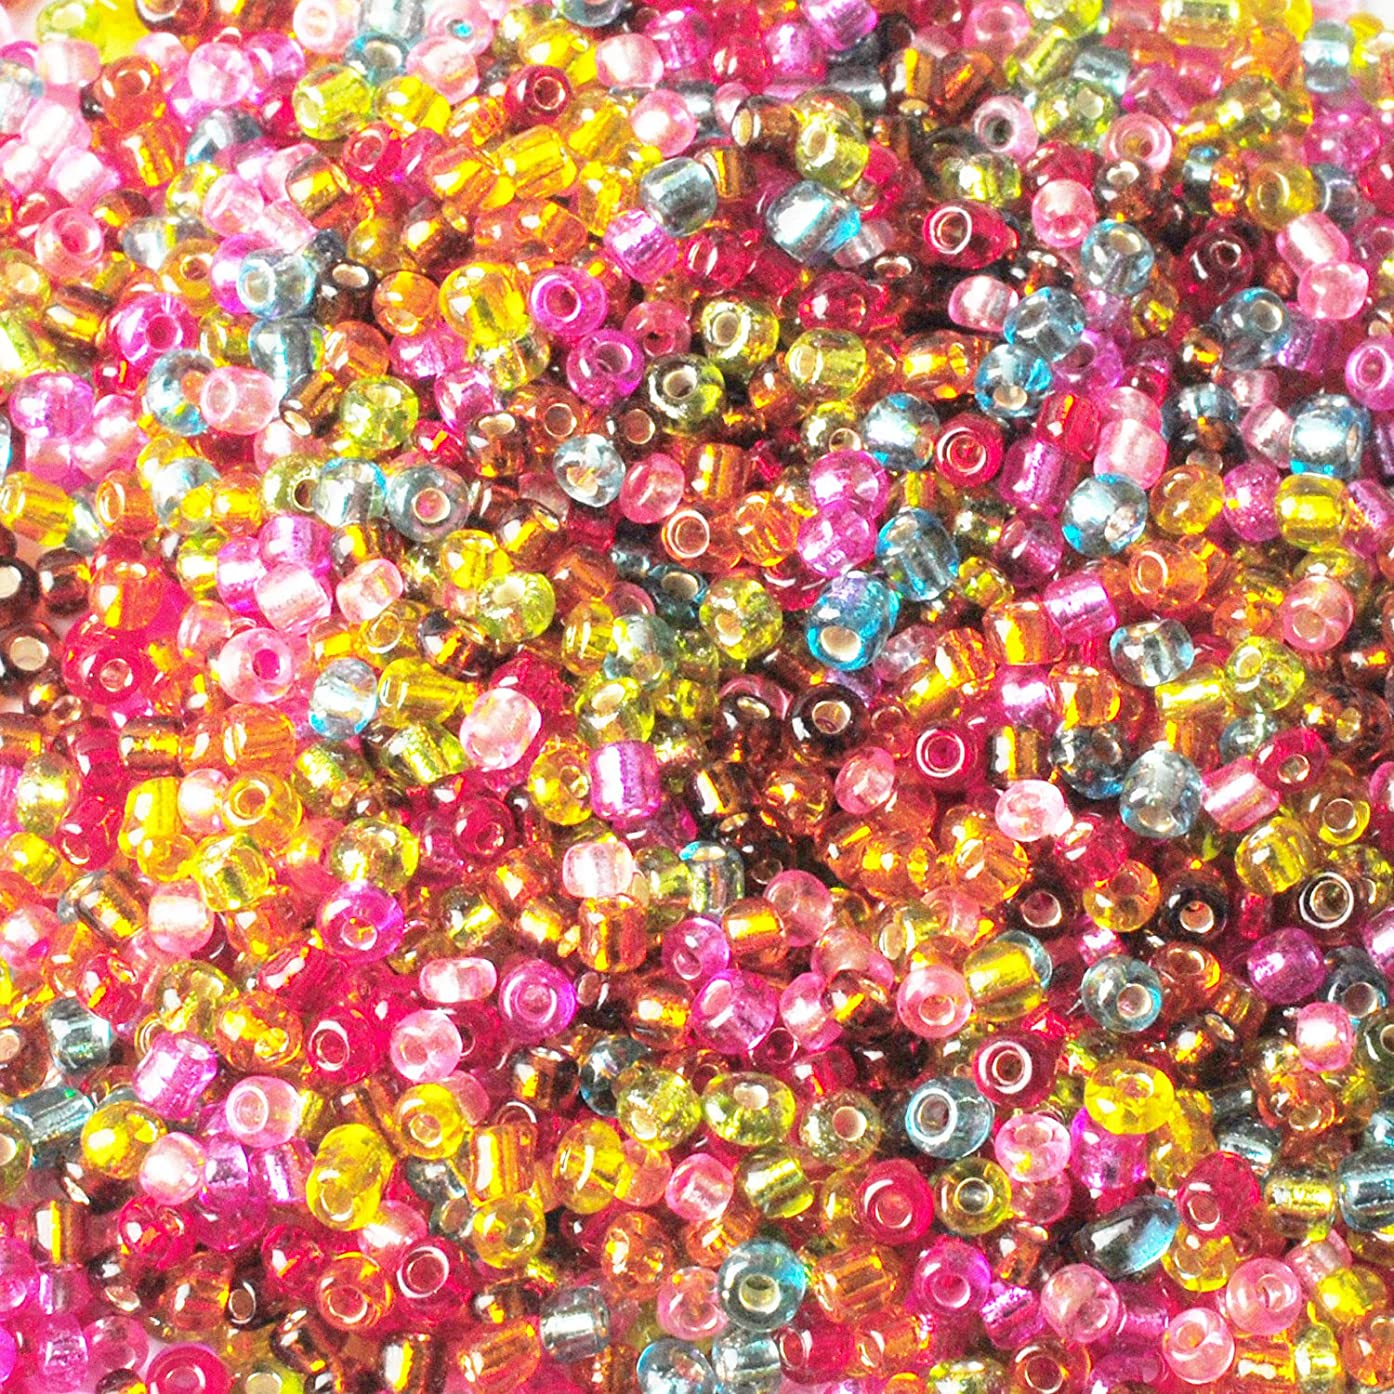 2000PCS Glass Seed Beads Small Loose Beads for DIY Jewelry Making - Mixed Color, 2mm